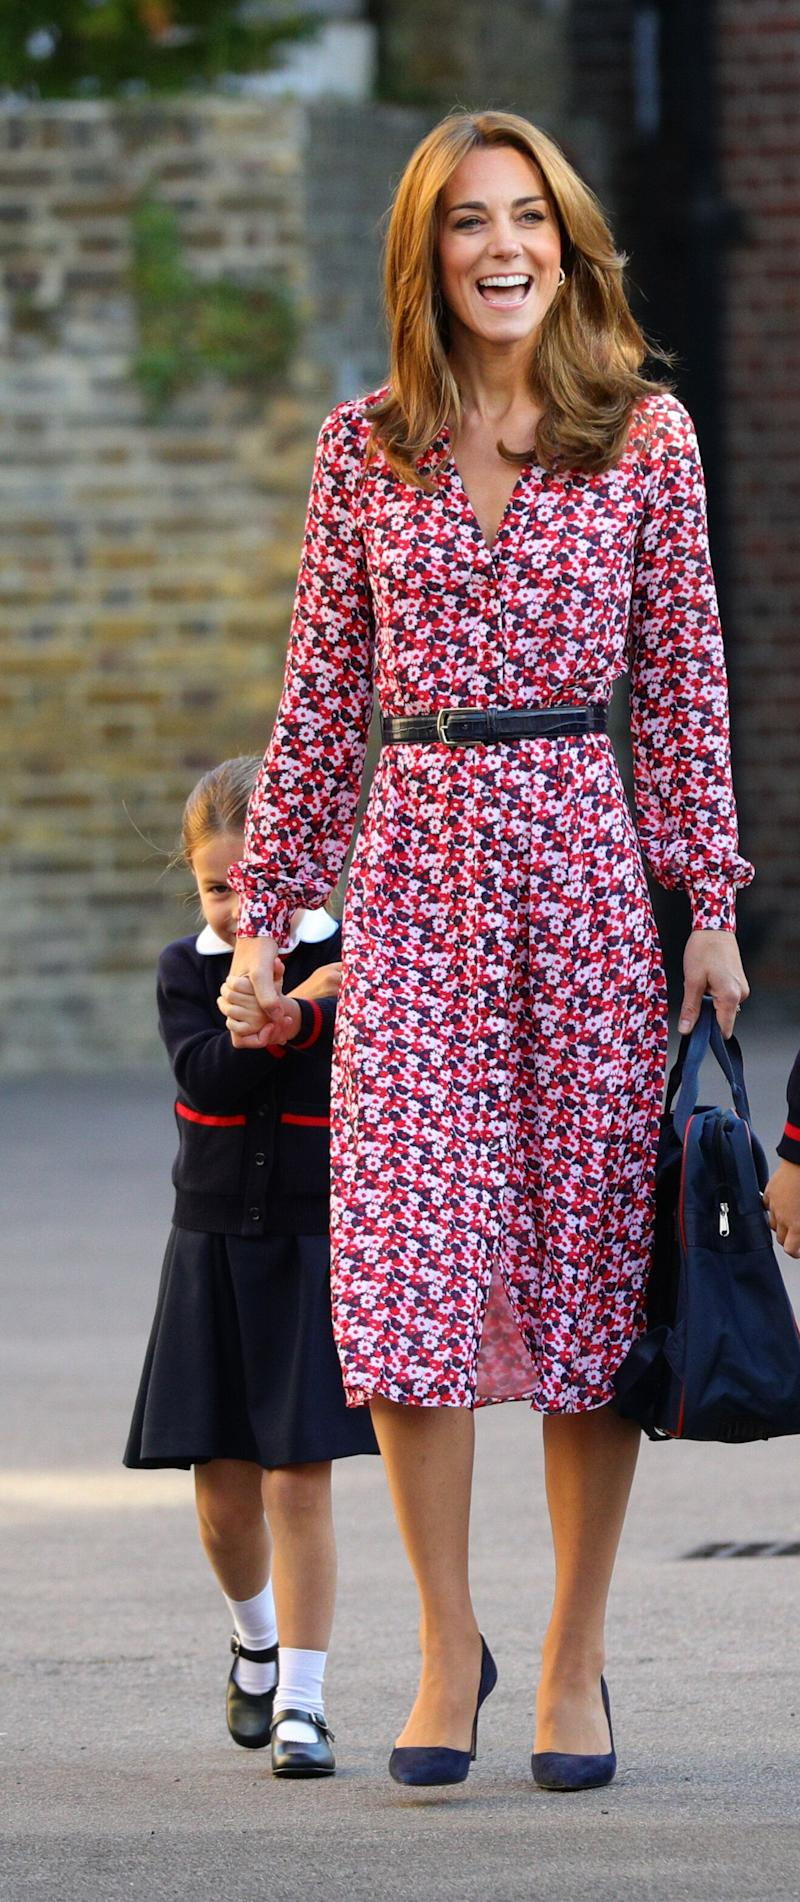 Kate Middleton Reveals Why This Photo Of Princess Charlotte Is So Significant